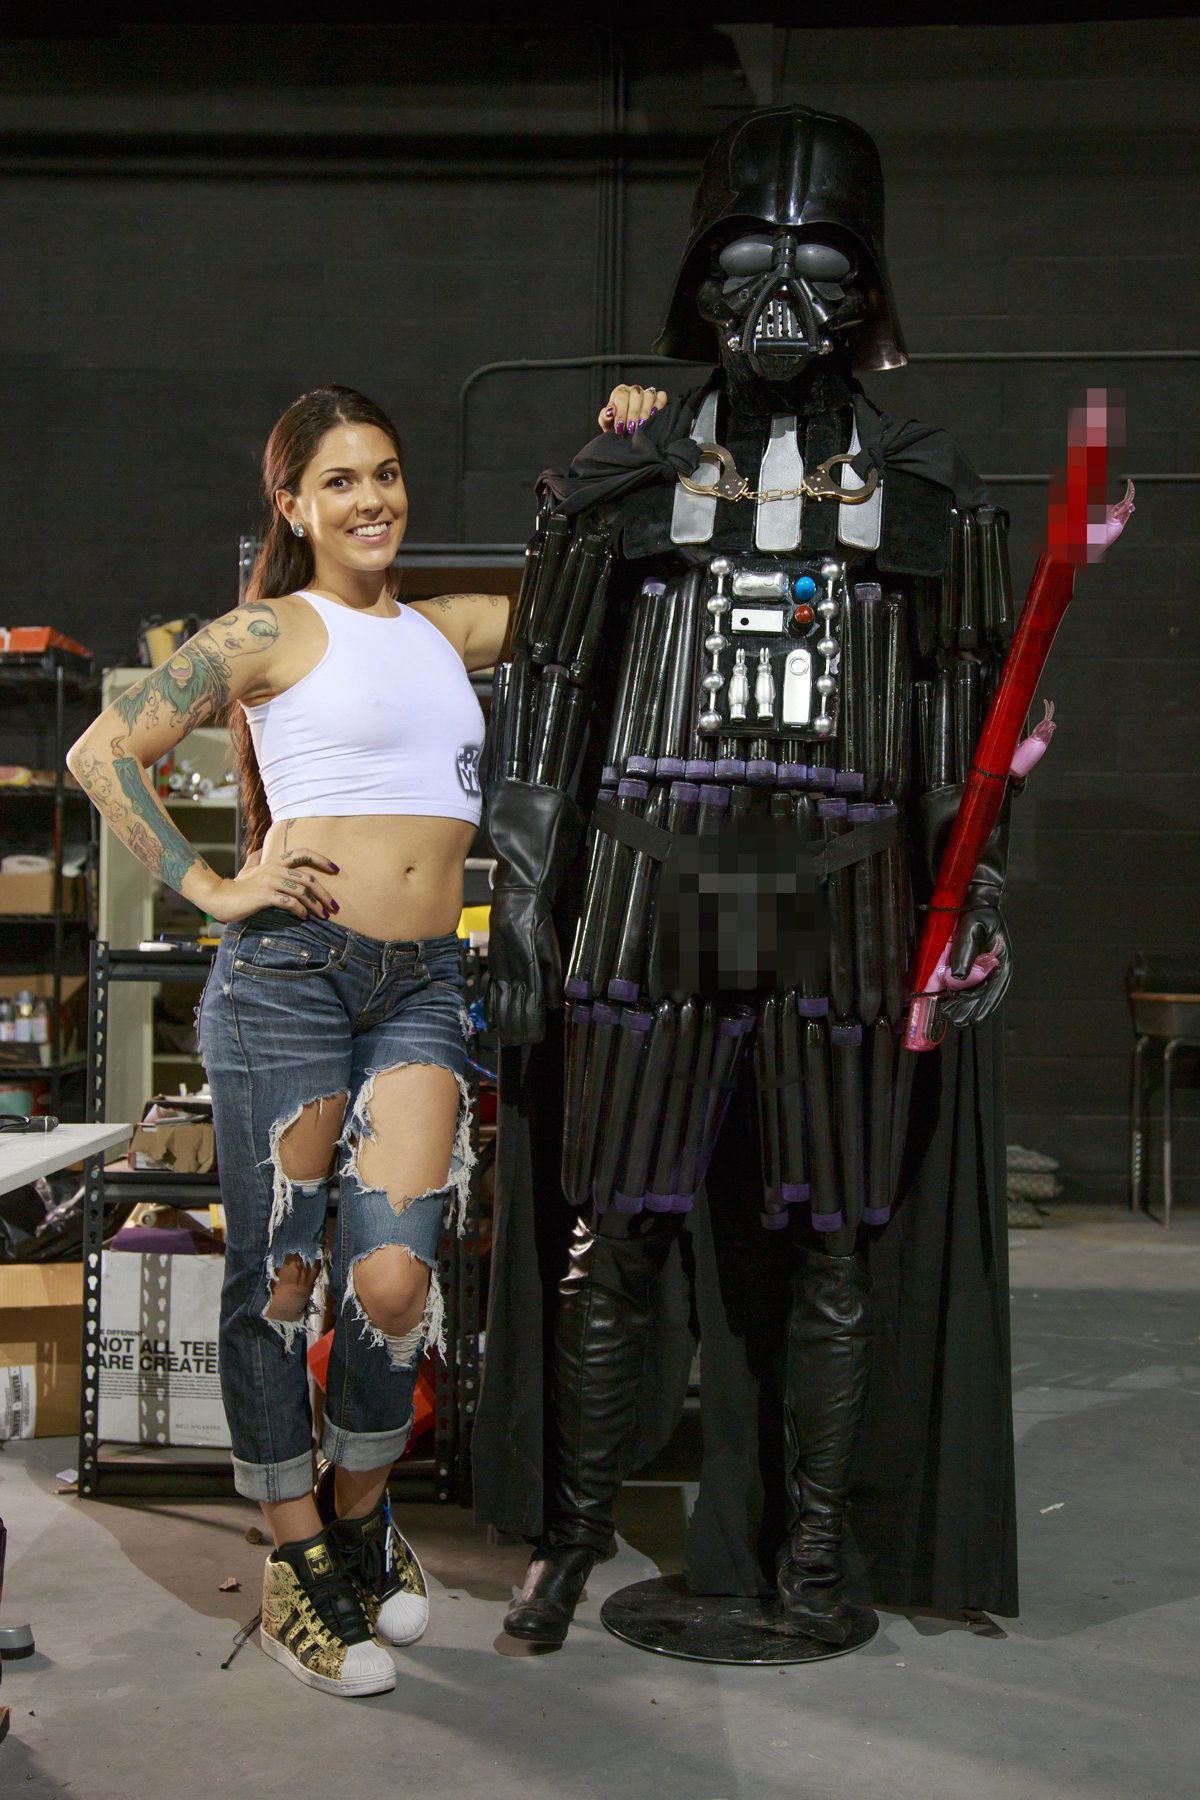 Porn actress Kayla-Jane Danger, 29, built a 7-foot-tall Darth Vader statue out of sex toys.